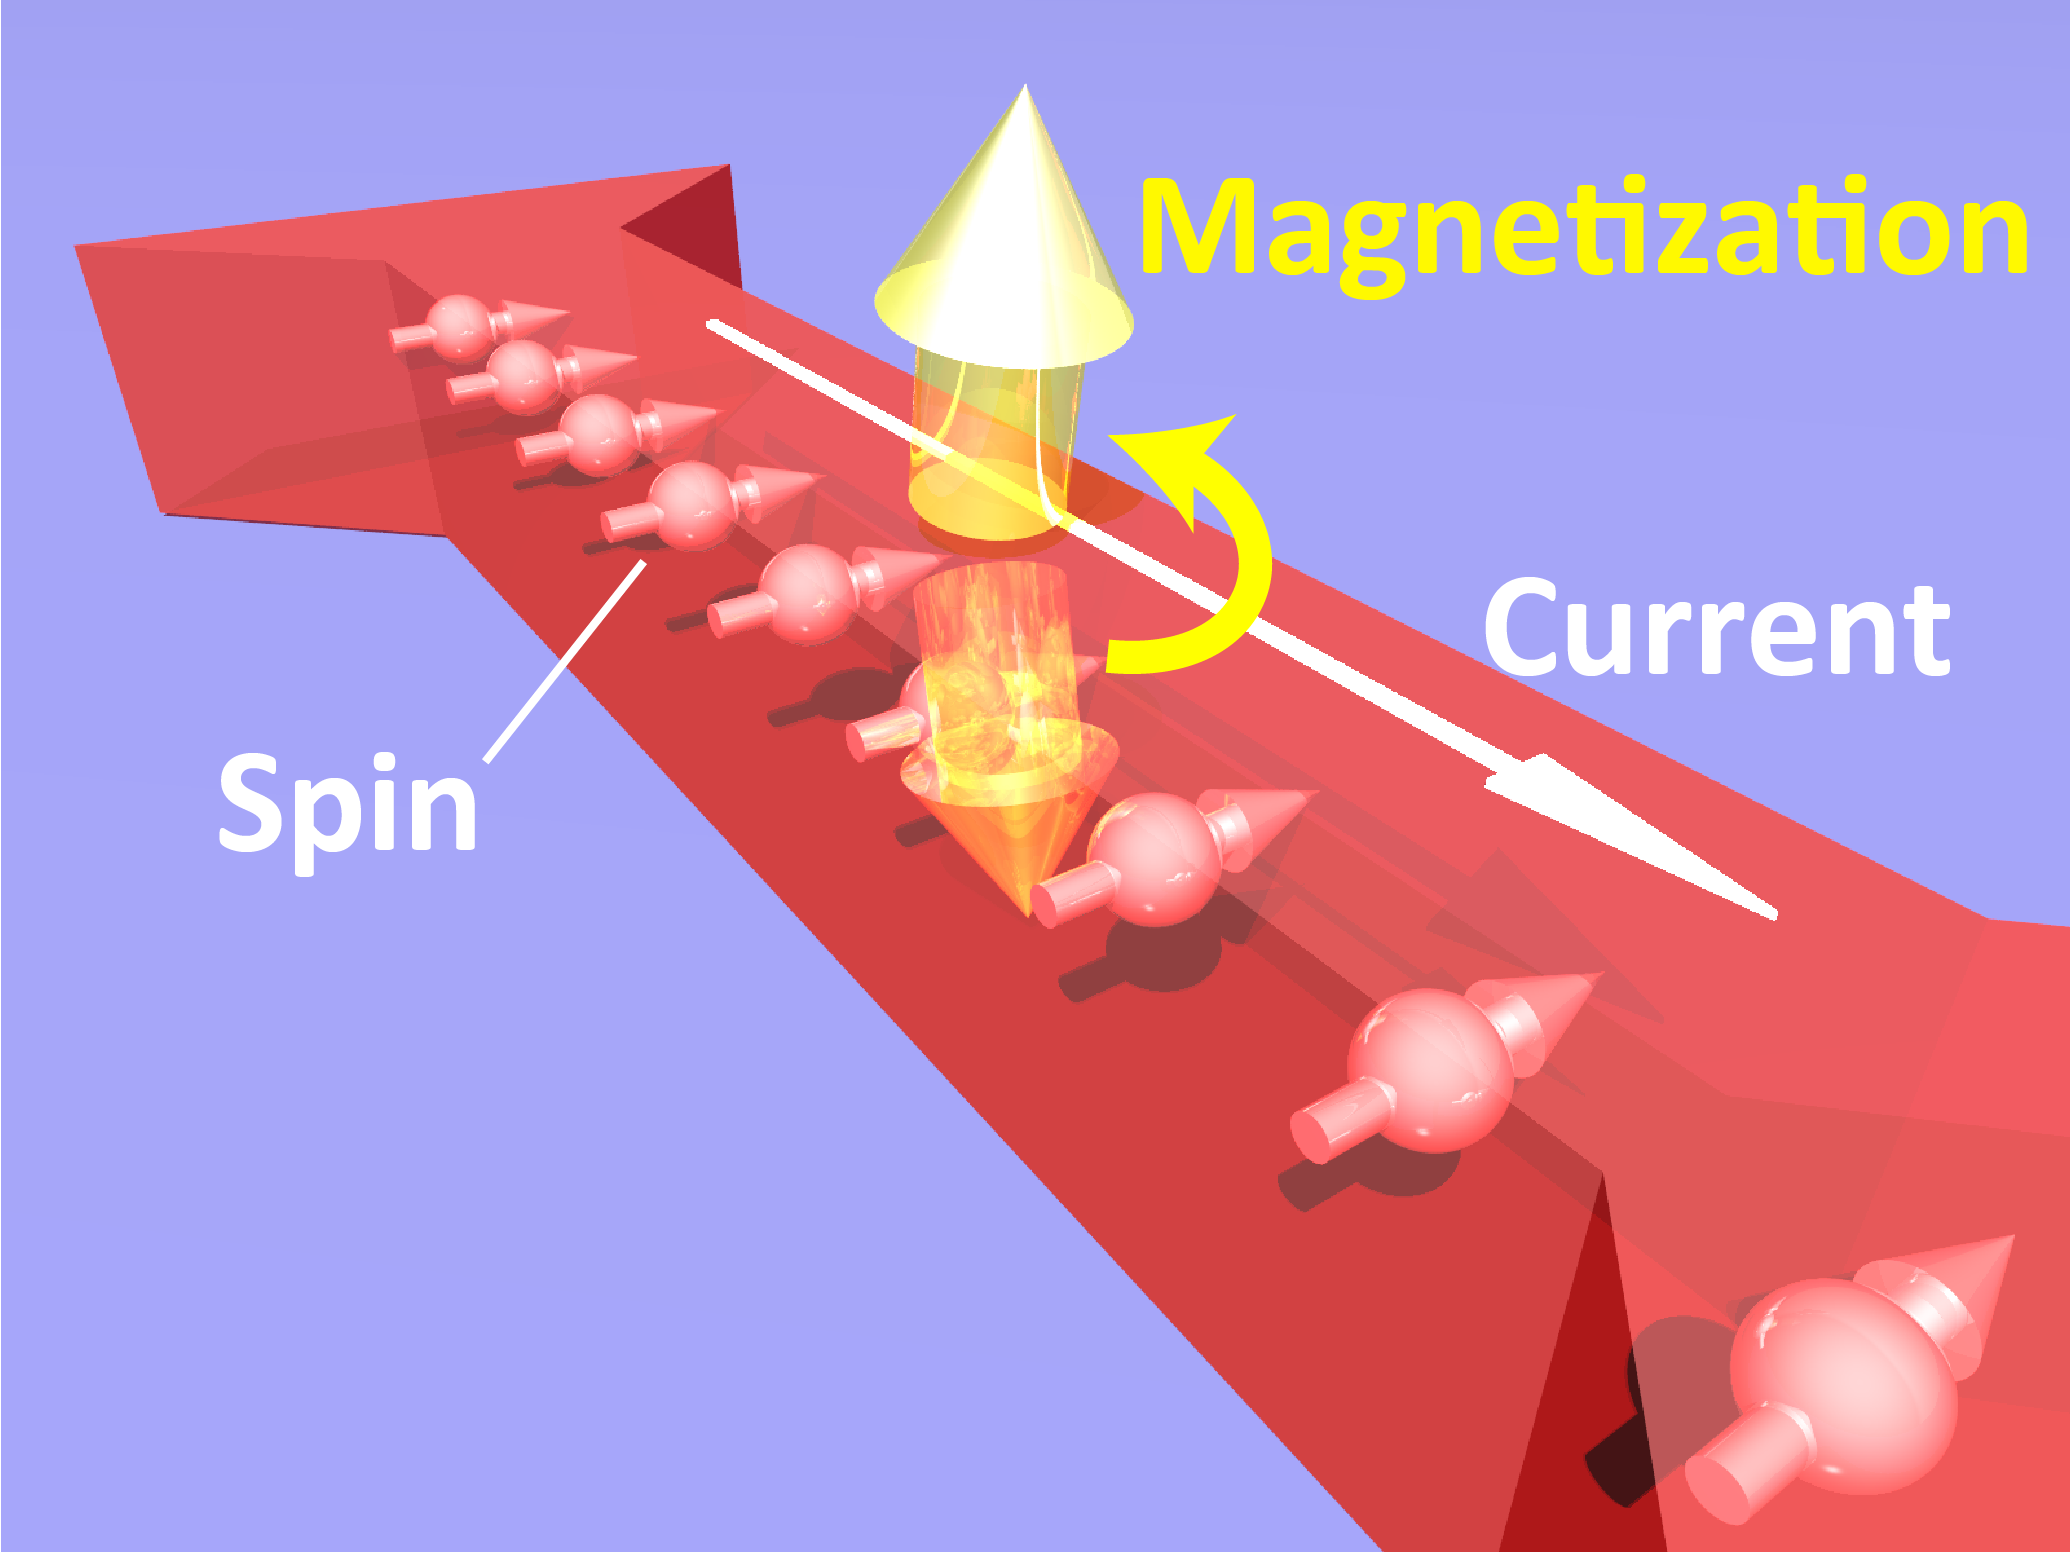 A pale blue background. A red shape represents the research sample. Small arrows inside represent electron spins, they point in the same direction. A white arrow along the red shape represents the direction of current. Yellow arrows rotate around the red shape, these show the change in magnetization.